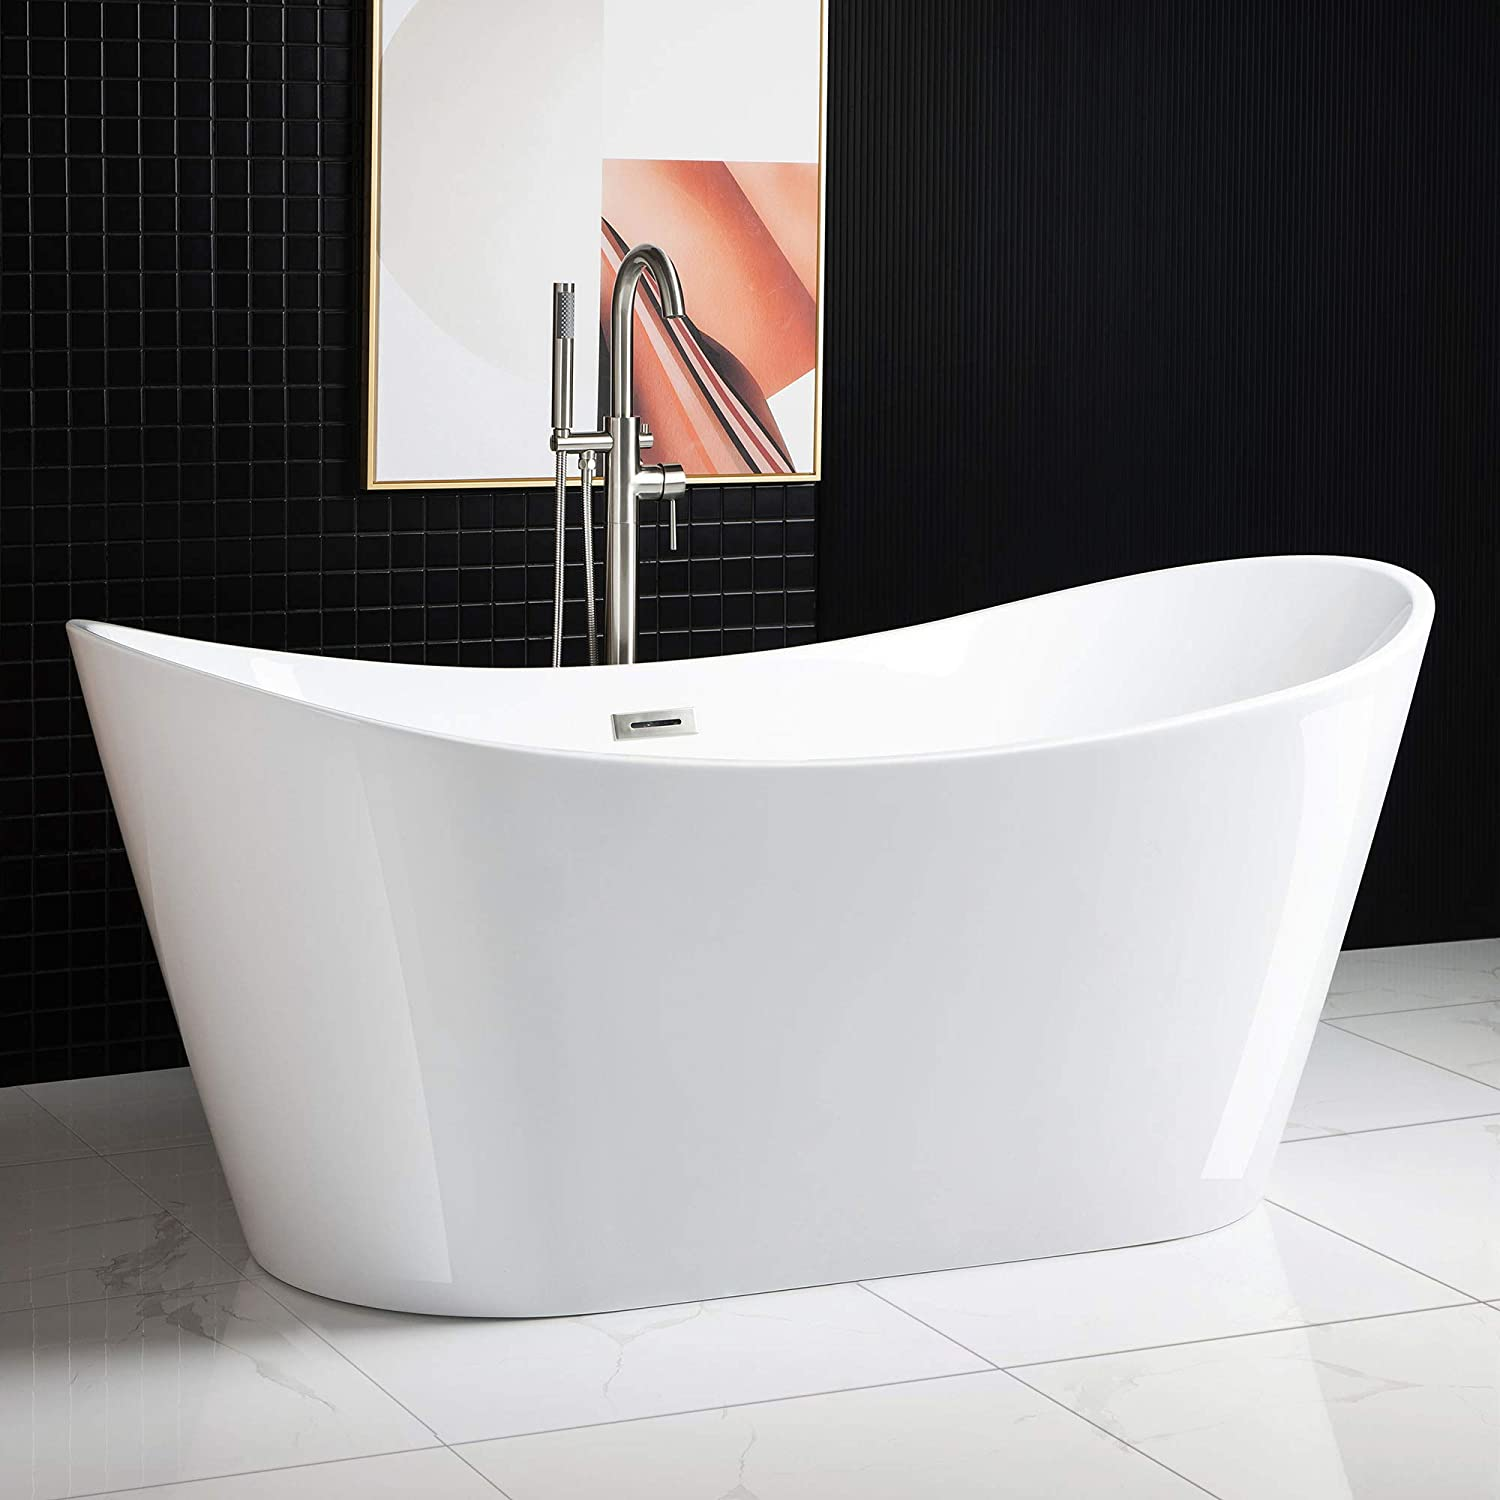 "WOODBRIDGE Acrylic Freestanding Bathtub Contemporary Soaking Tub with Brushed Nickel Overflow and Drain BTA1515-B,White, 67"" B-0010"